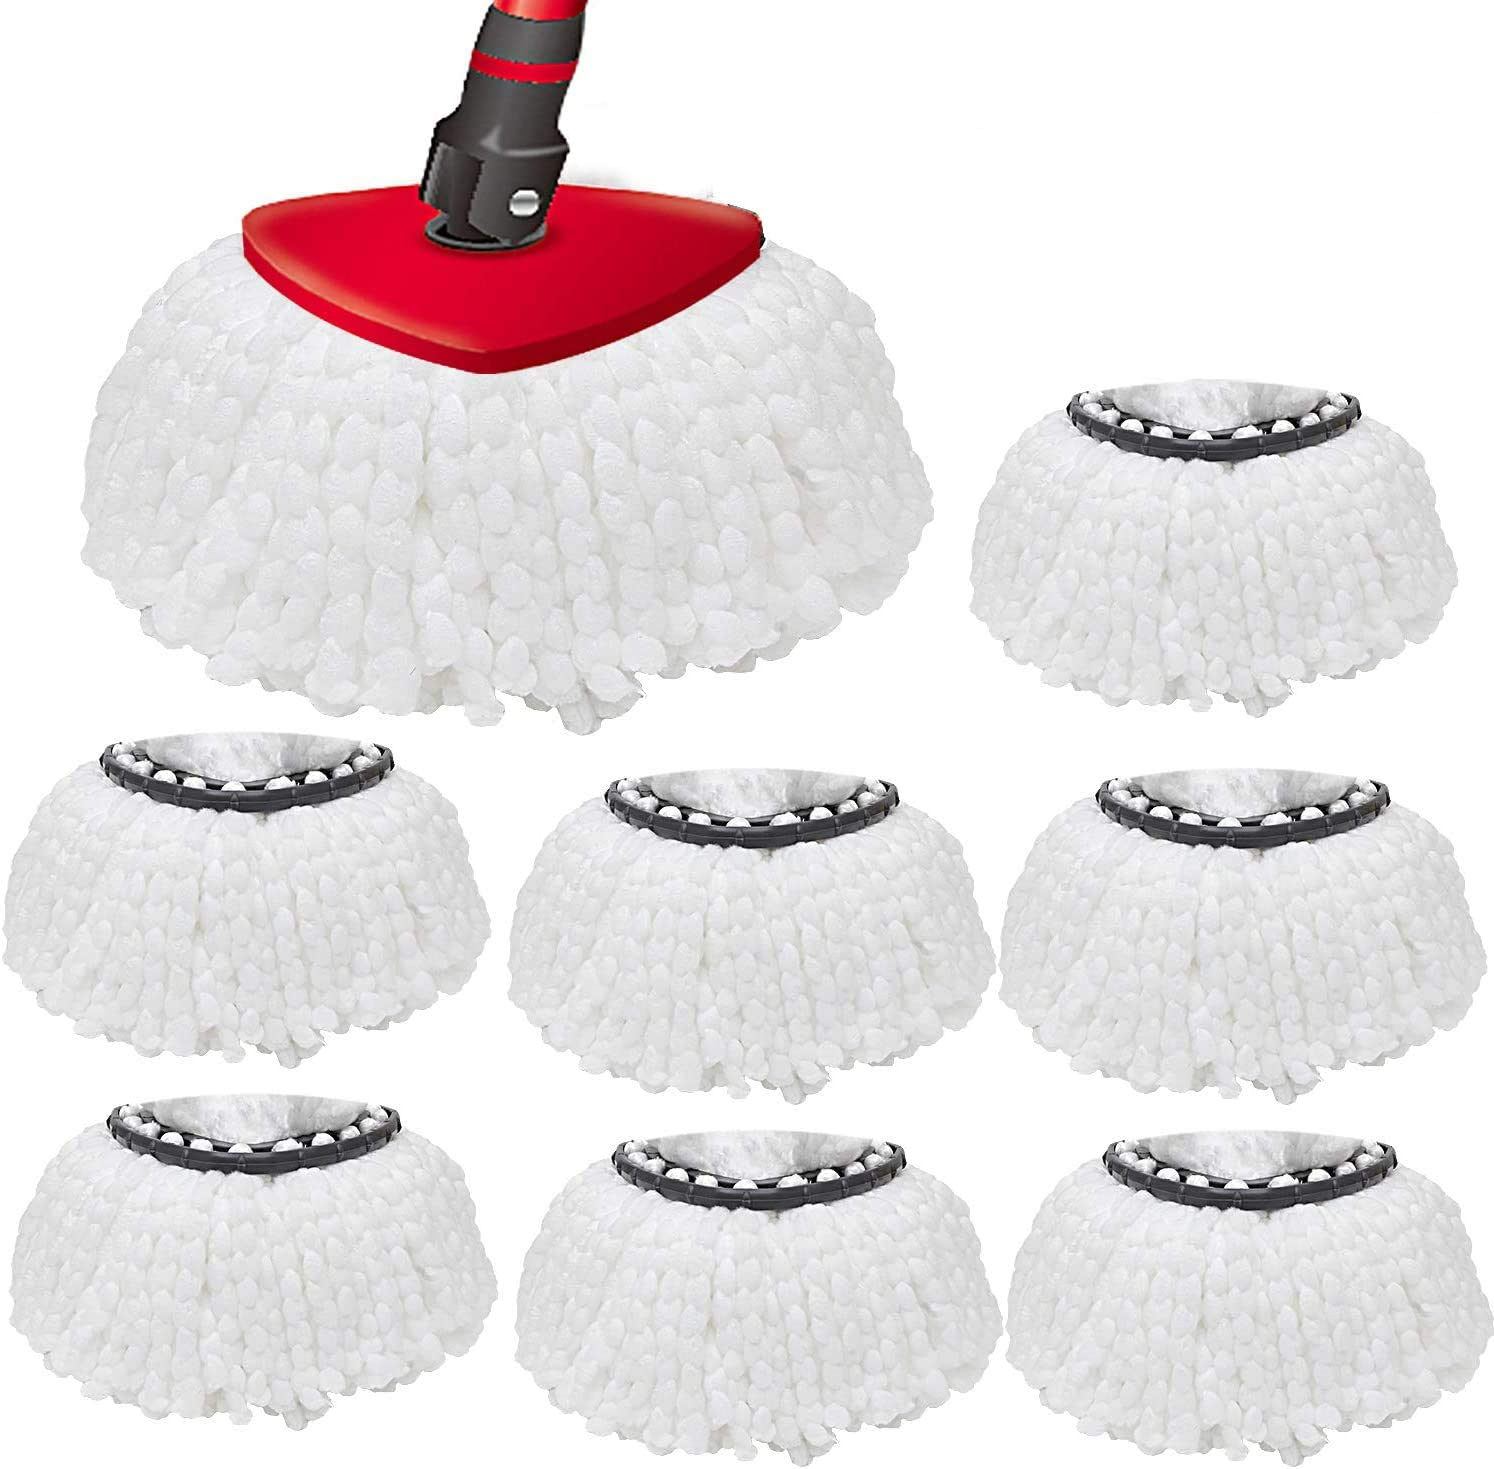 8PACK Spin Mop Replacement Heads, 100% Microfiber Mop Refill, Mop Replacement Heads for O-Ceda Spin Mop